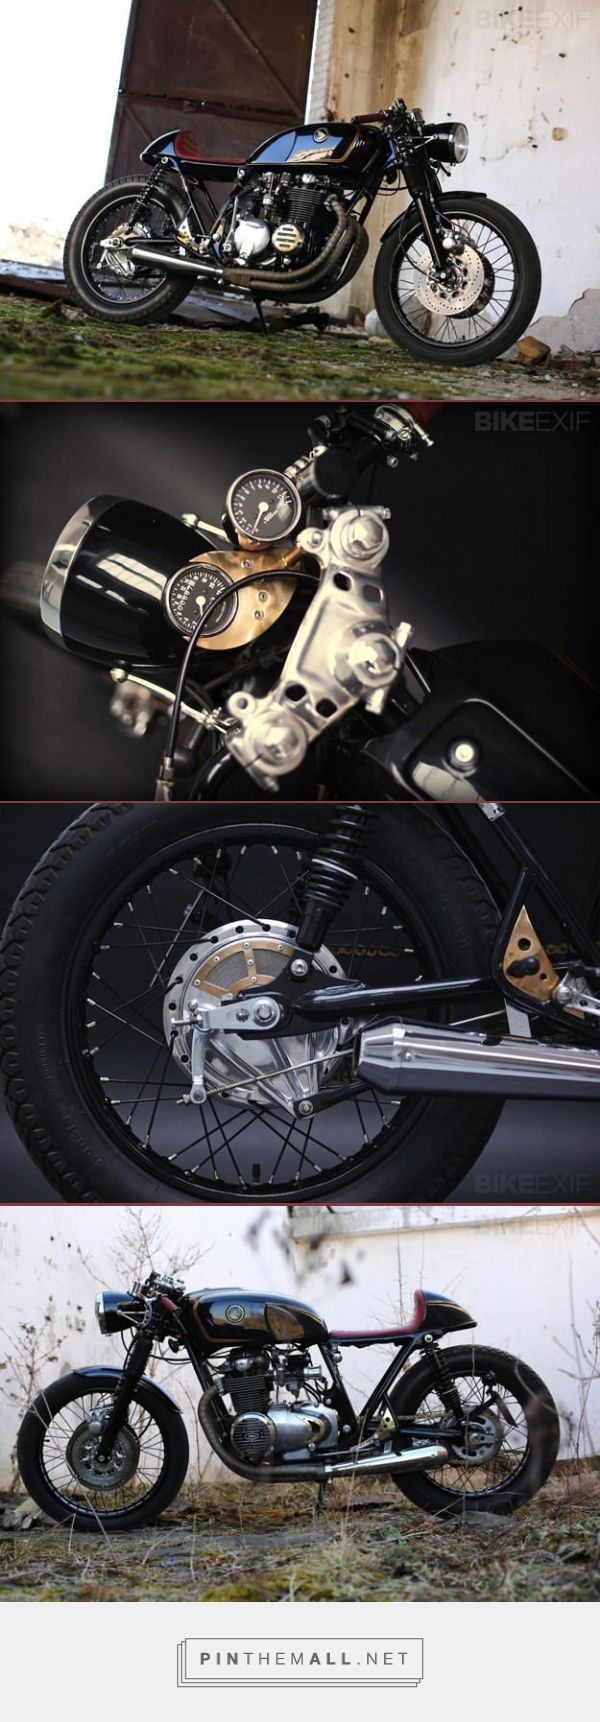 465 Best 1 Images On Pinterest Motorcycles Cars And Custom Bikes Rusi Motorcycle 125cc Wiring Diagram Honda Cb550 By Eastern Spirit Bike Exif Created Via Https Pinthemall